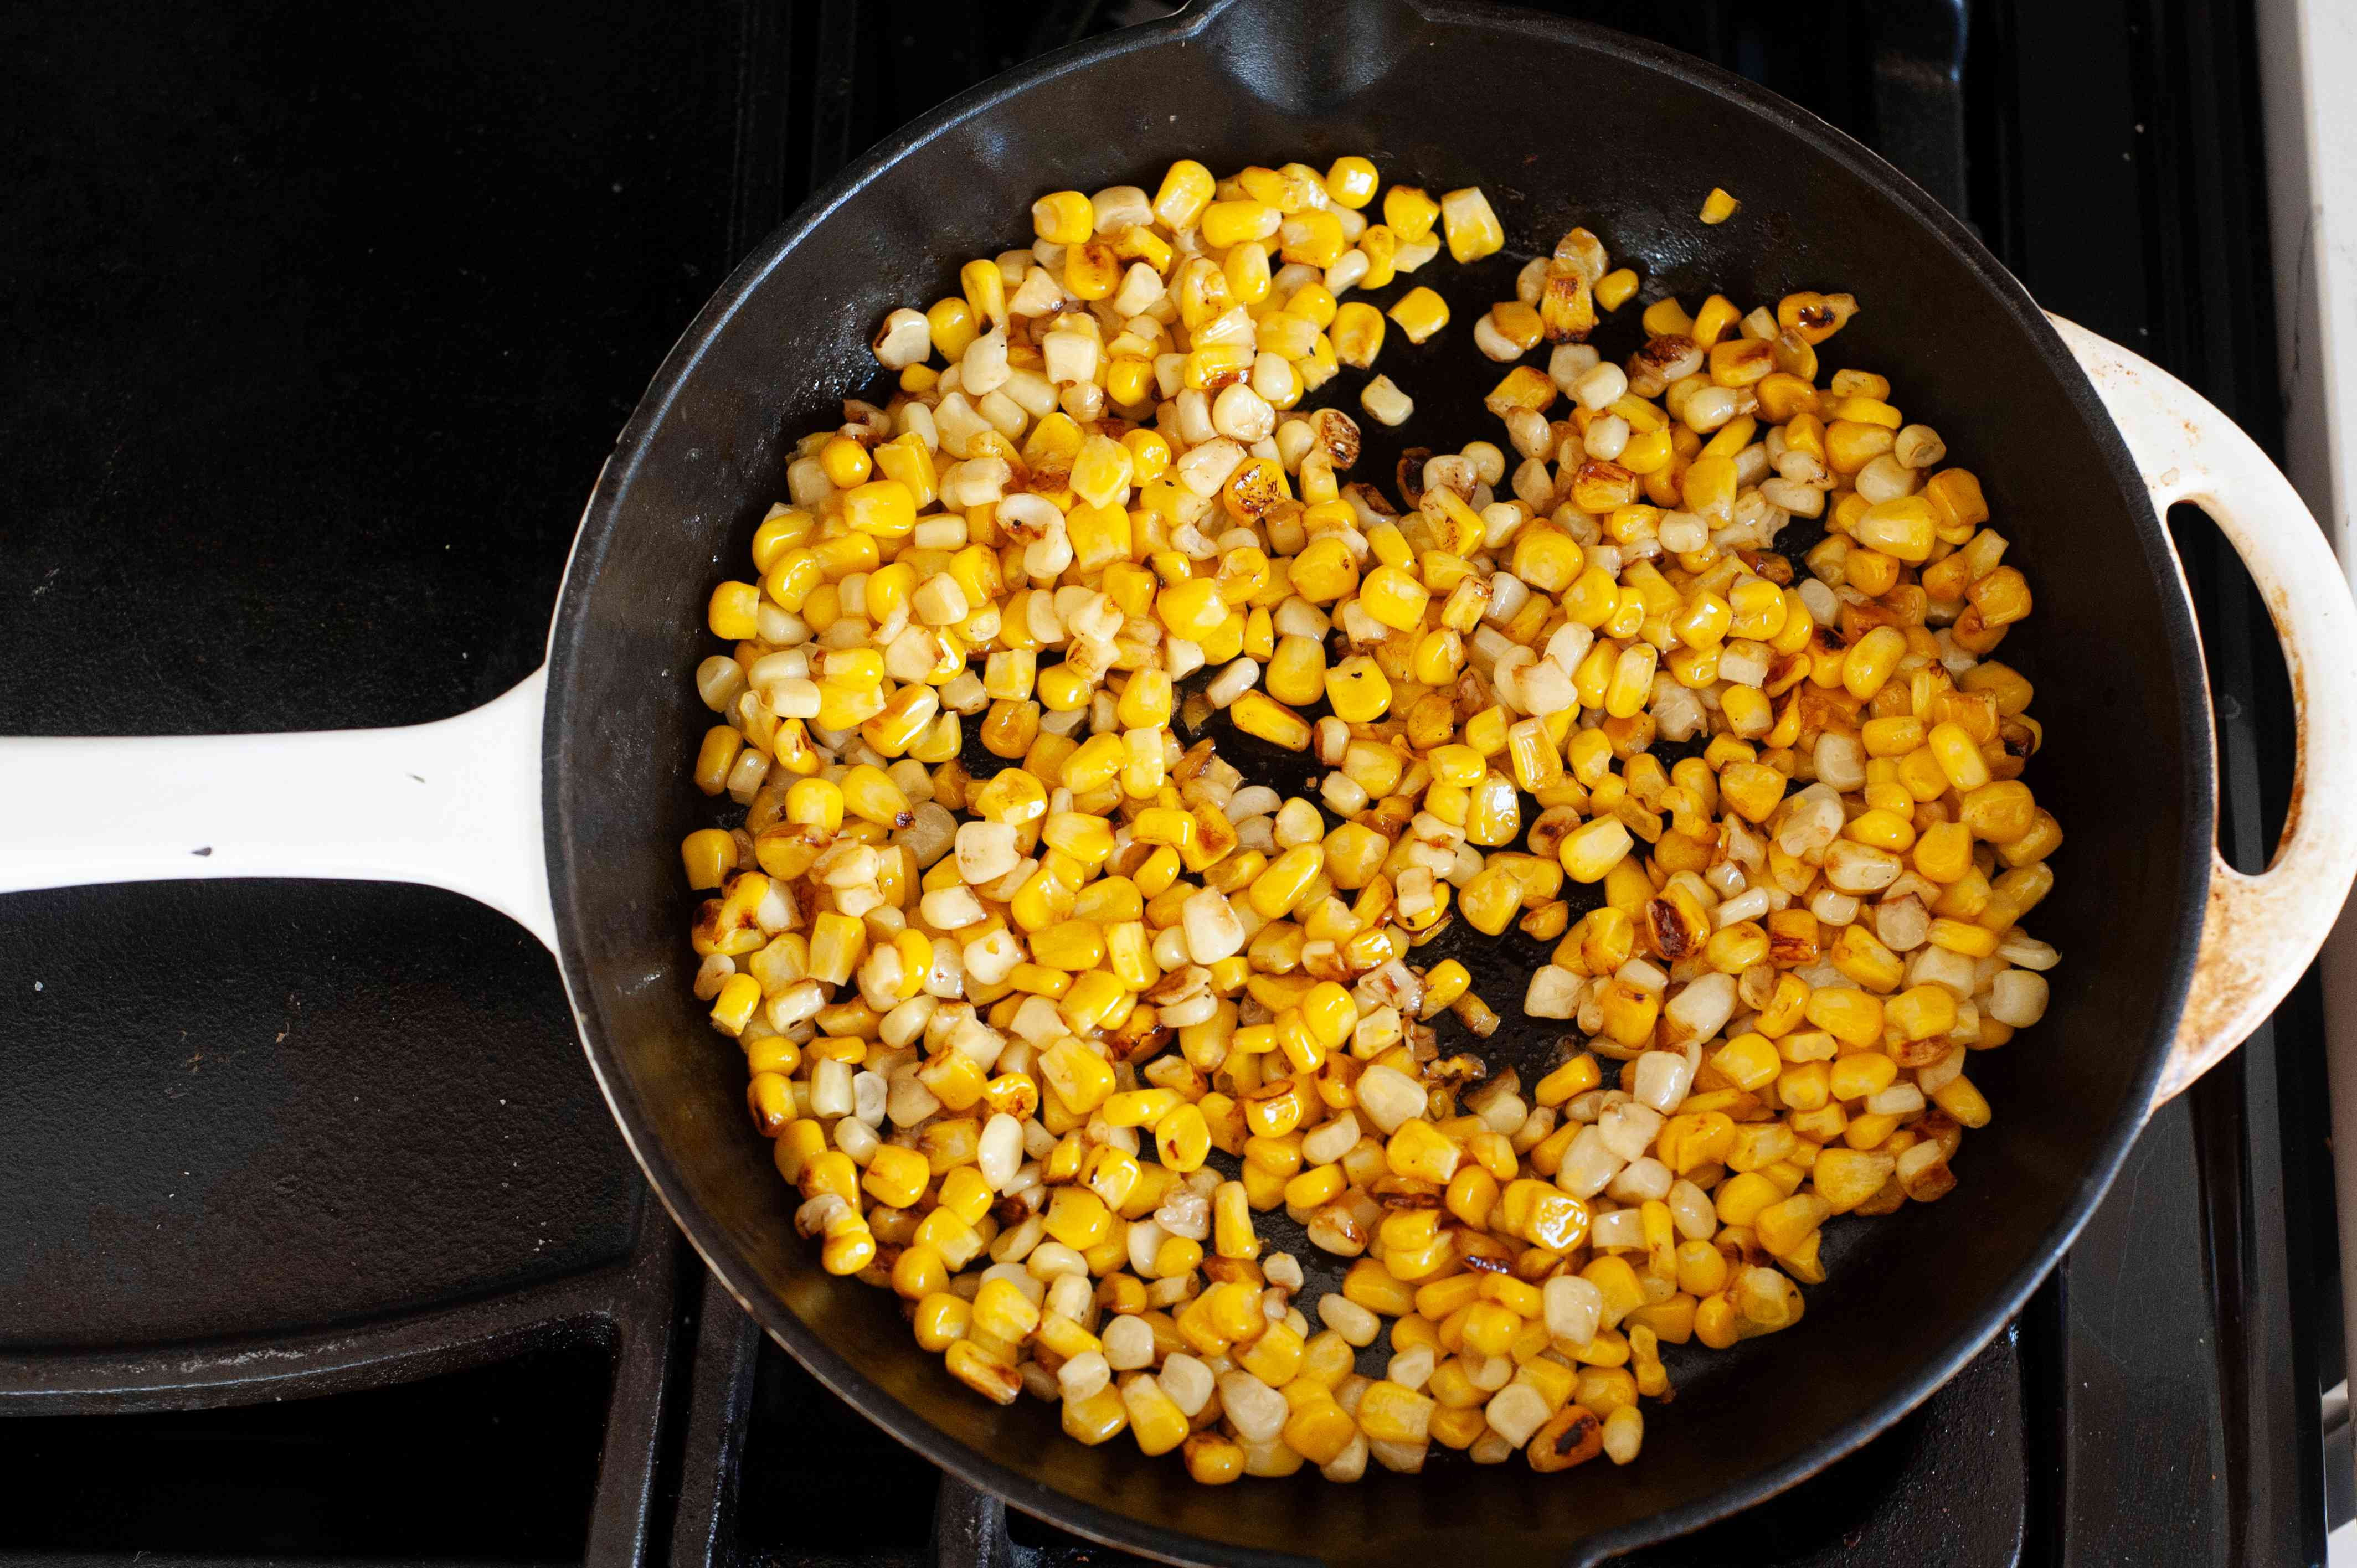 Corn in a skillet to make Tex-Mex Chopped Chicken Salad with Cilantro Lime Vinaigrette.